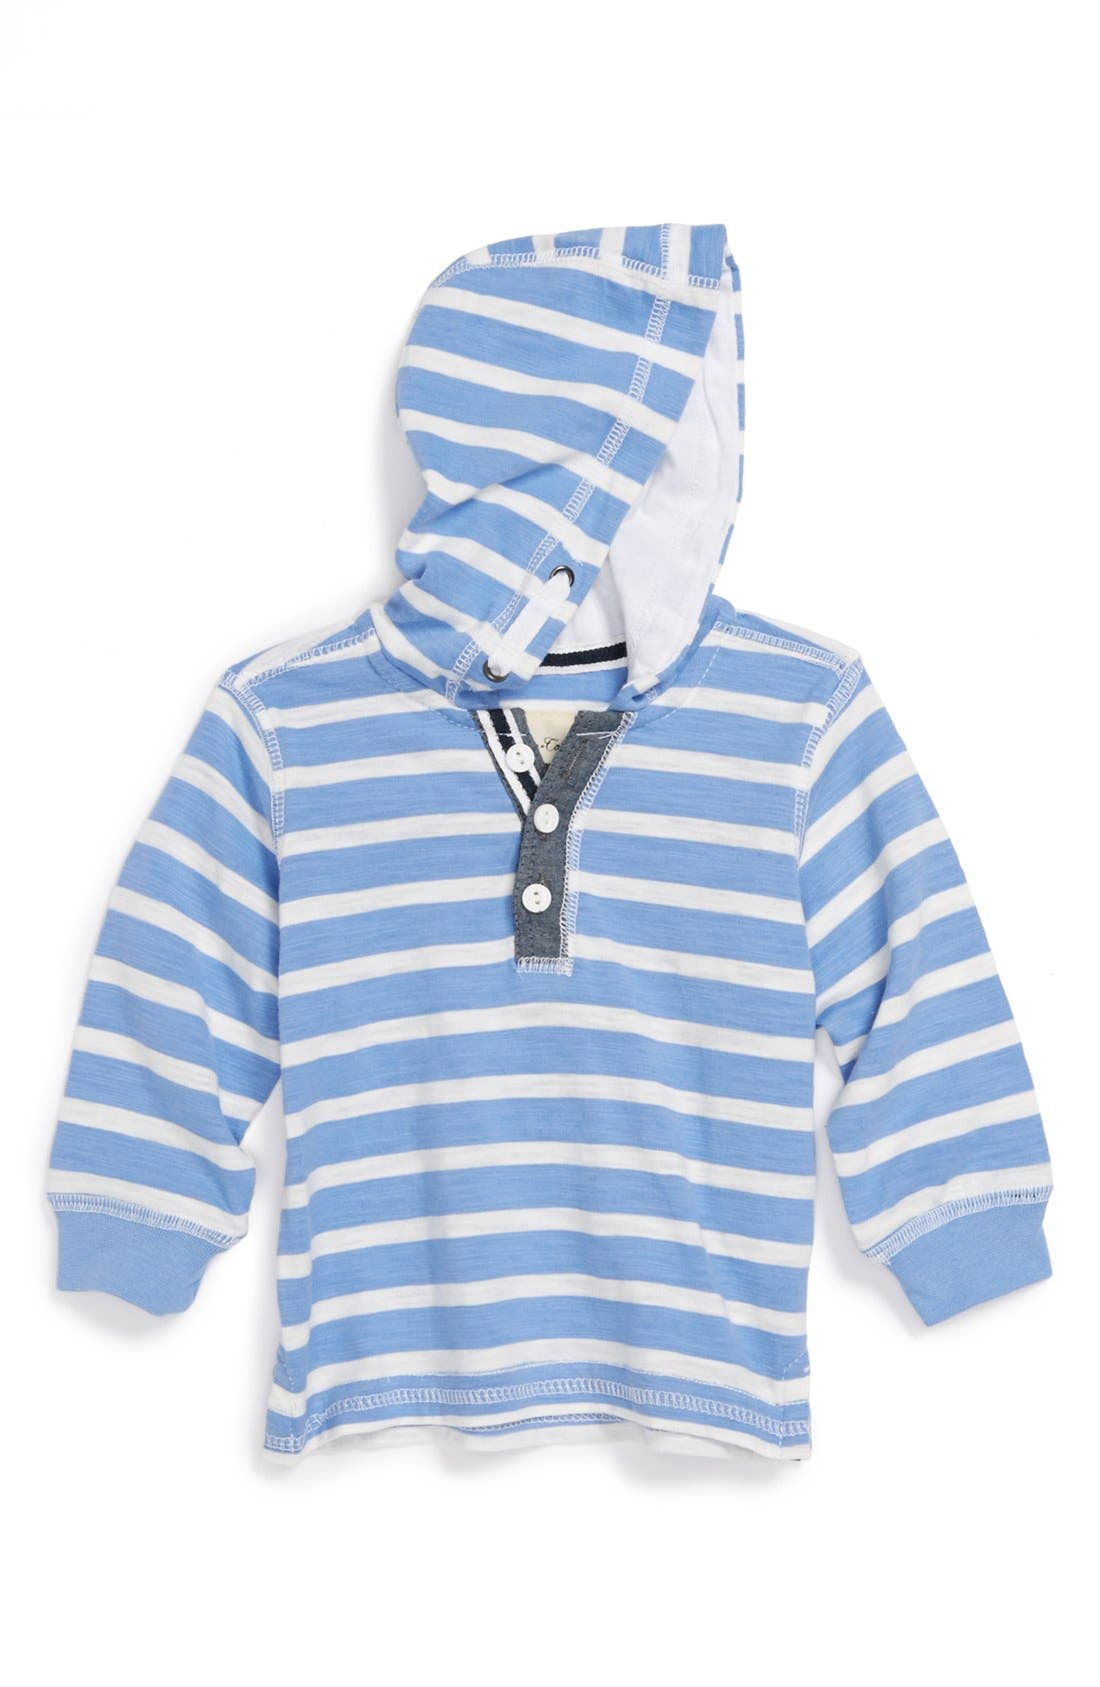 Alternate Image 1 Selected - Sovereign Code 'Anarchy' Chambray Trimmed Hoodie (Toddler Boys)